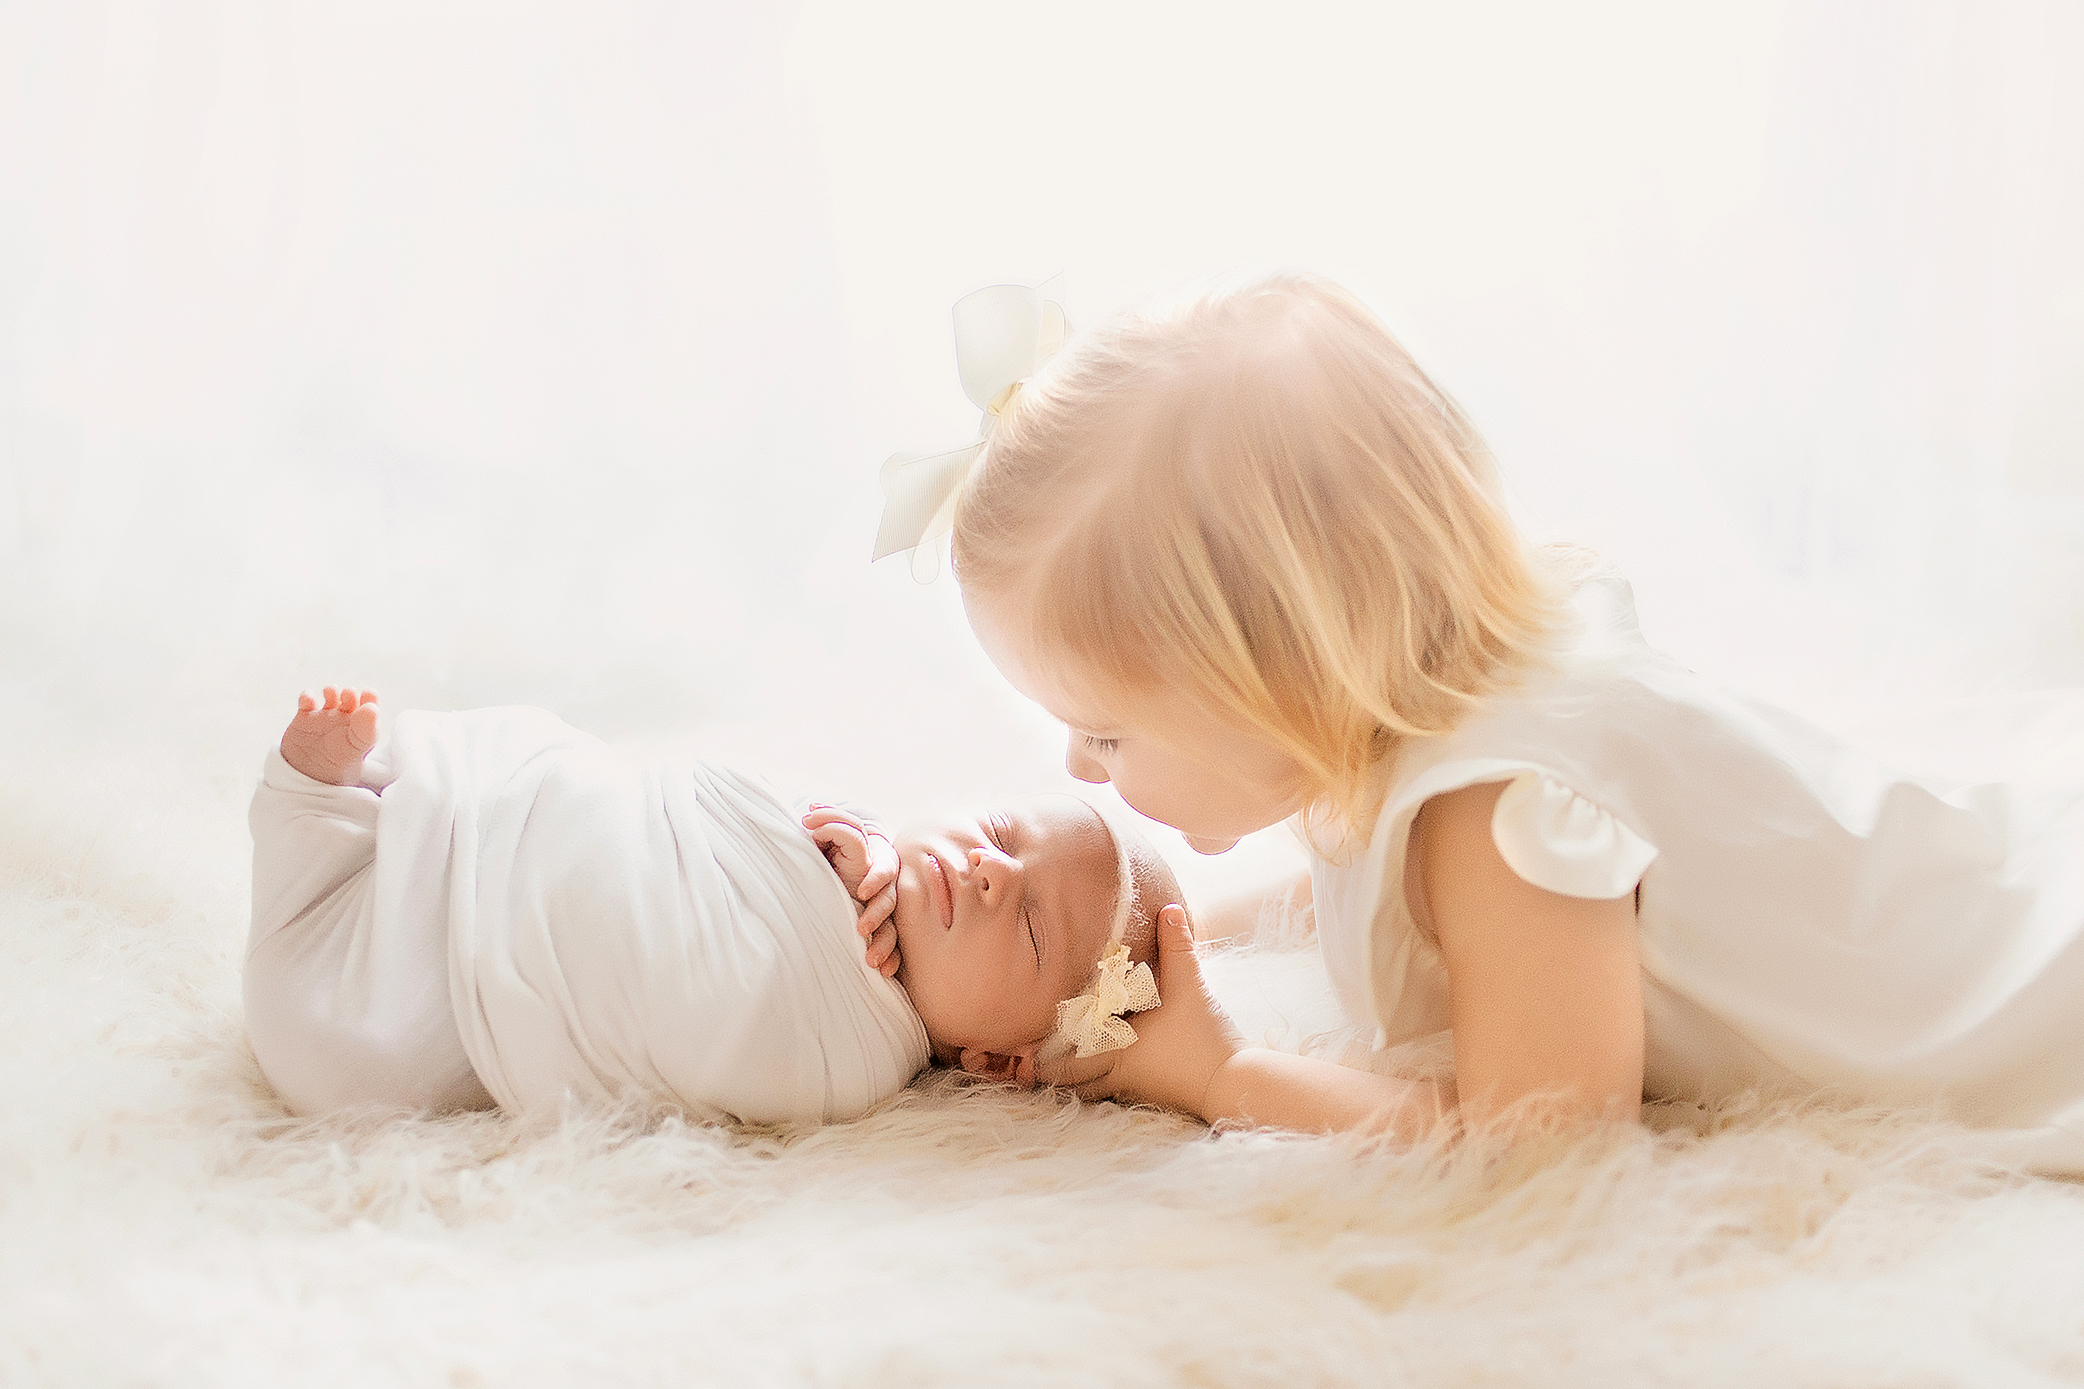 heirloom $600 - - Full posed newborn session, multiple setups- Parent + sibling poses included- 25+ fully edited digital images to download